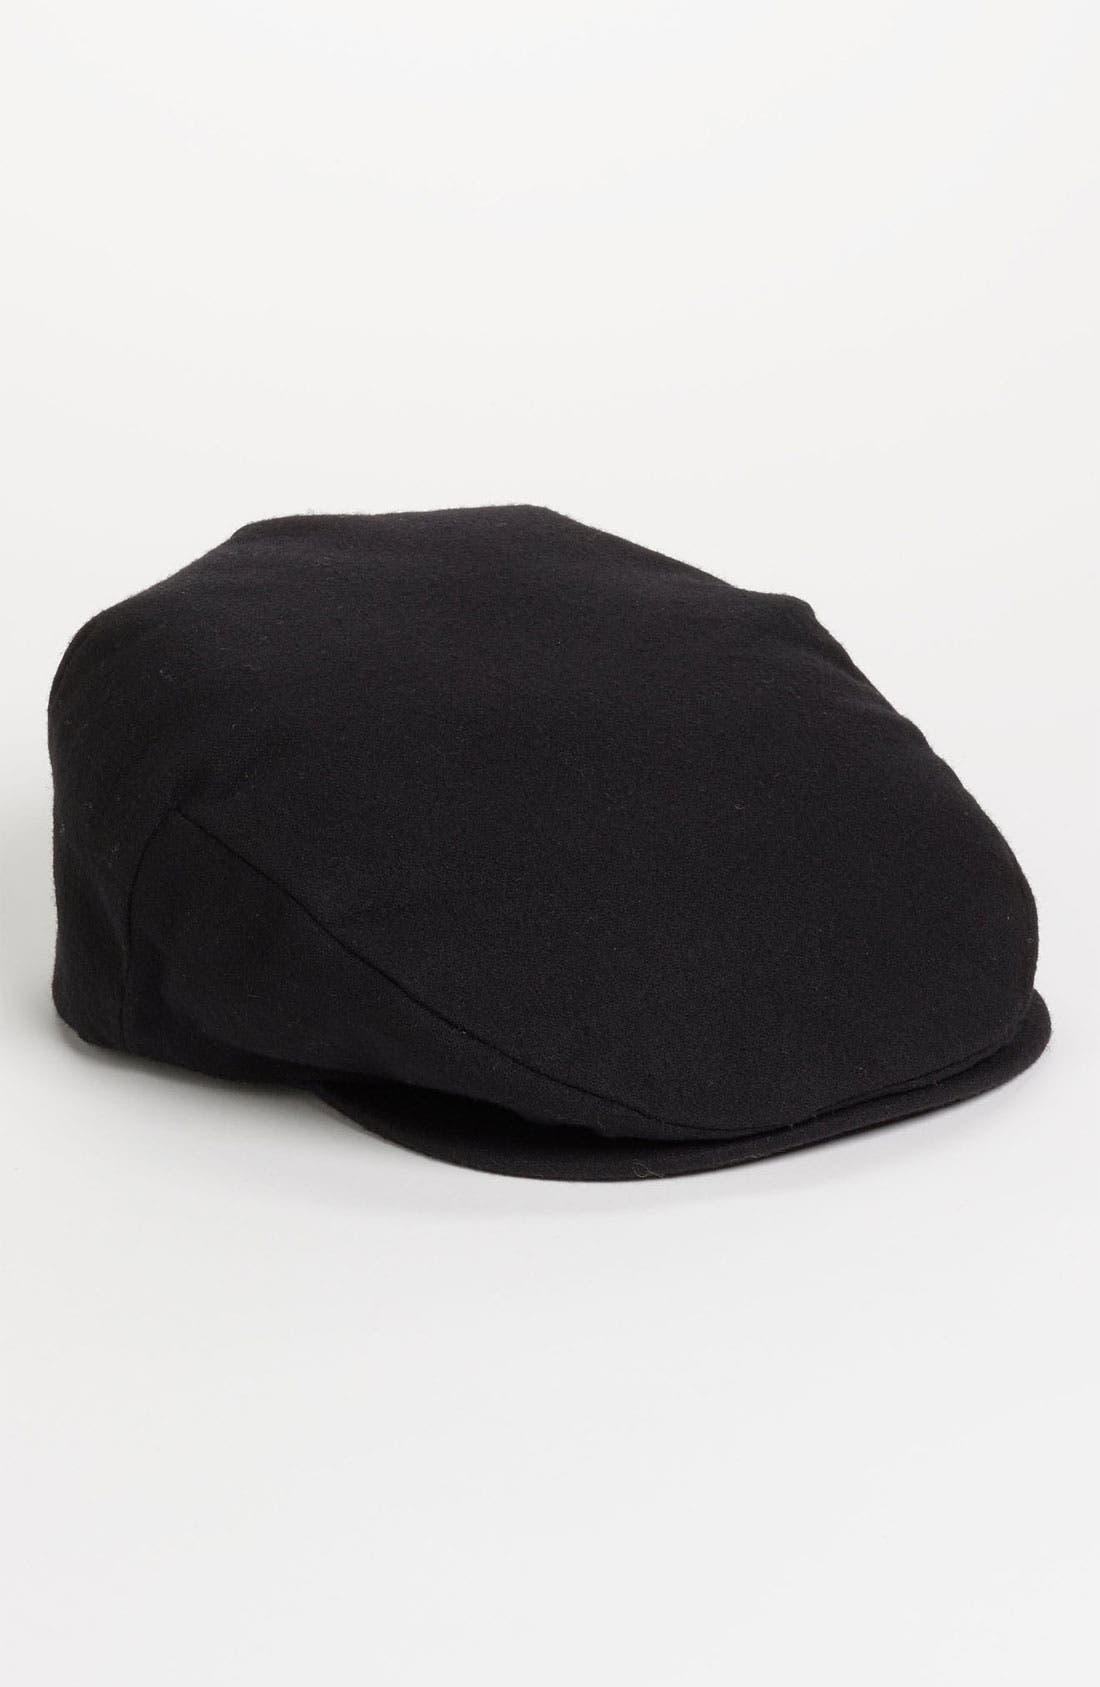 Alternate Image 1 Selected - Pendleton 'Cabbie' Driving Cap